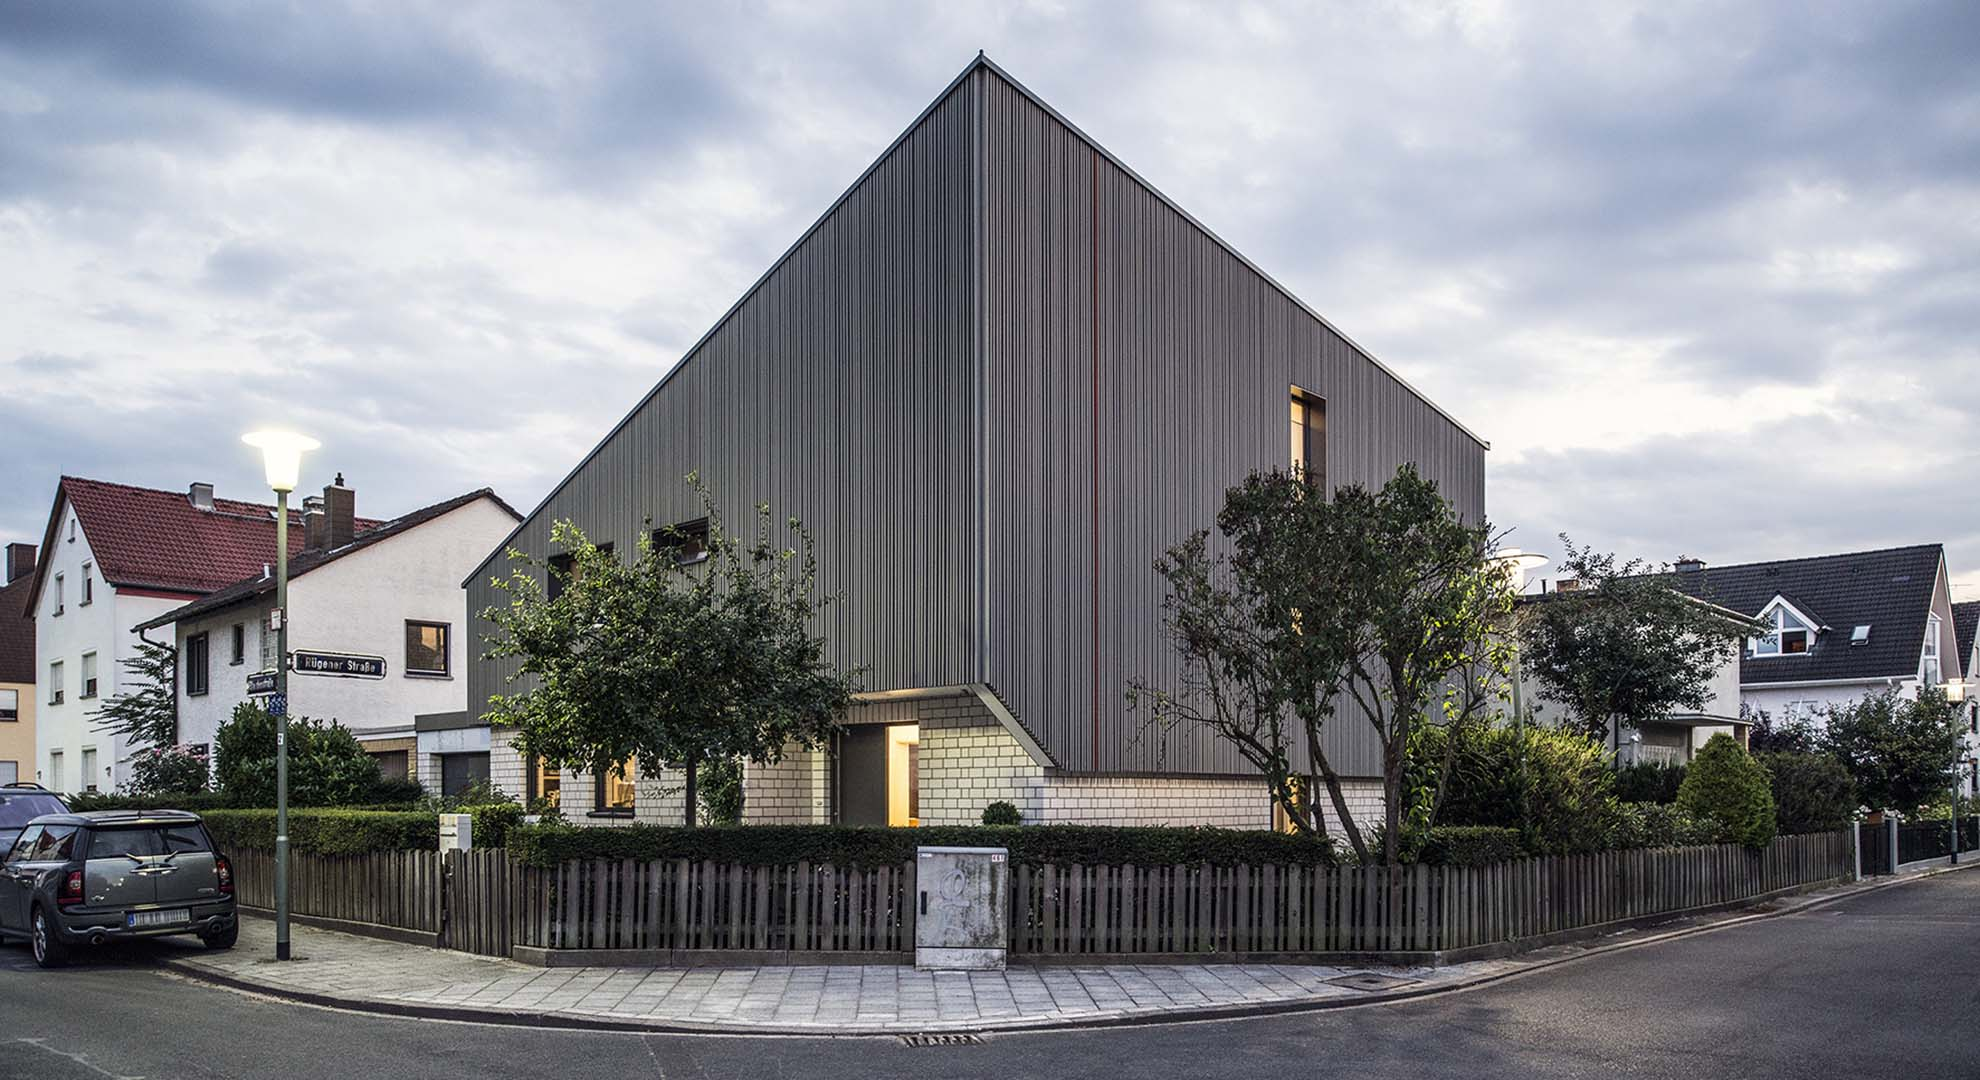 New building processes are being explored by a growing number of architects in the field, through community-driven and self-built projects